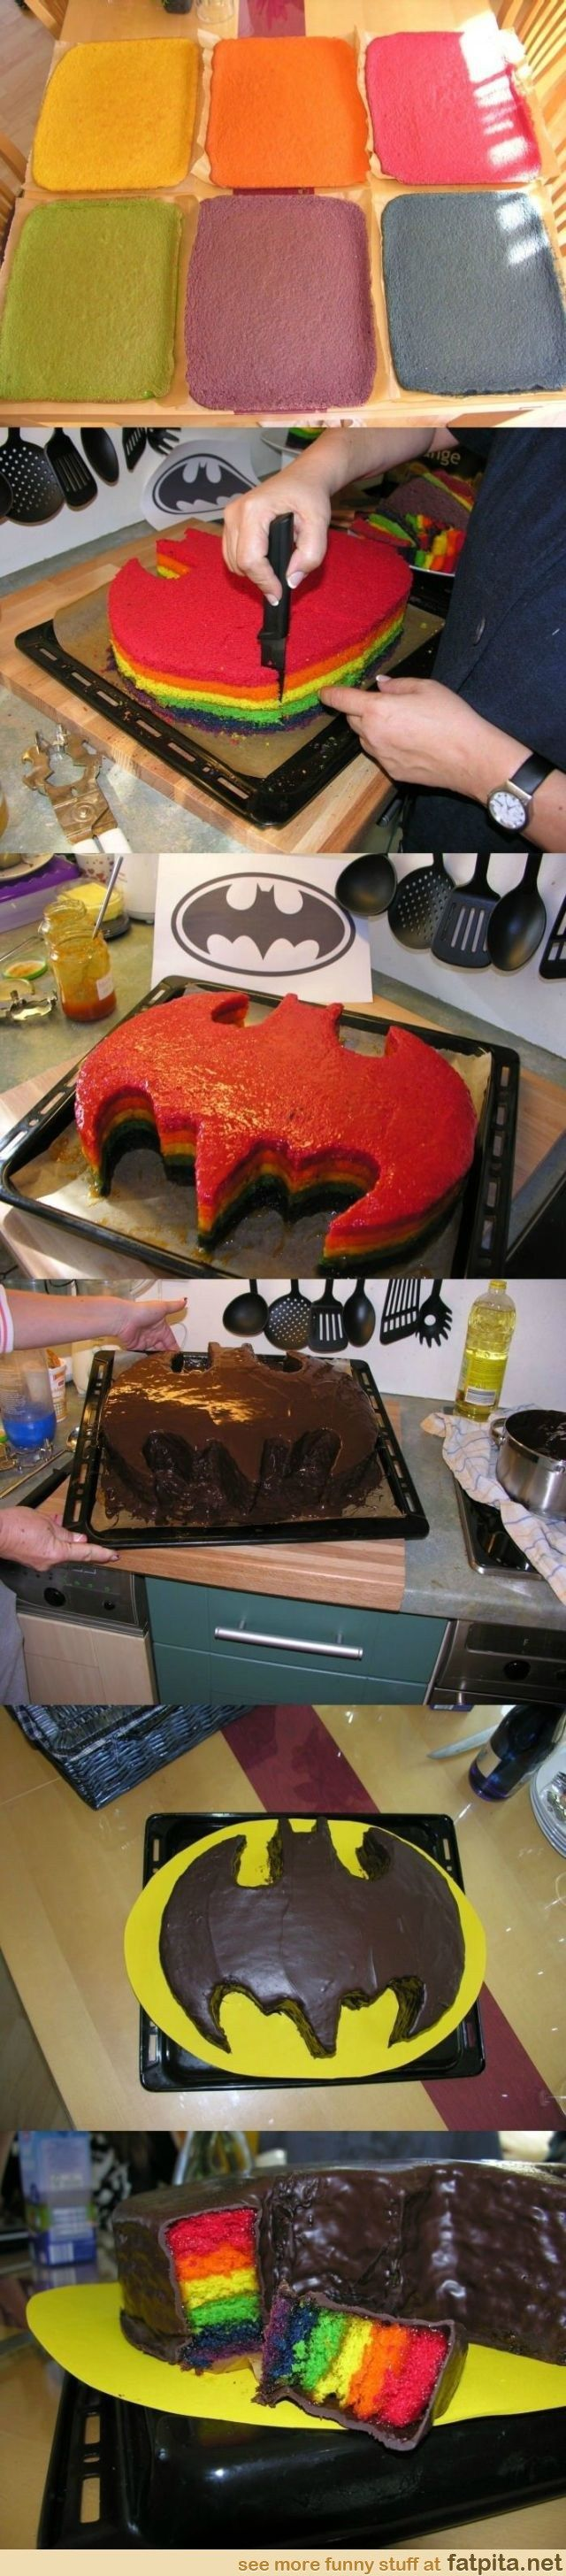 Batman rainbow cake, and you can eat the parts you cut out!